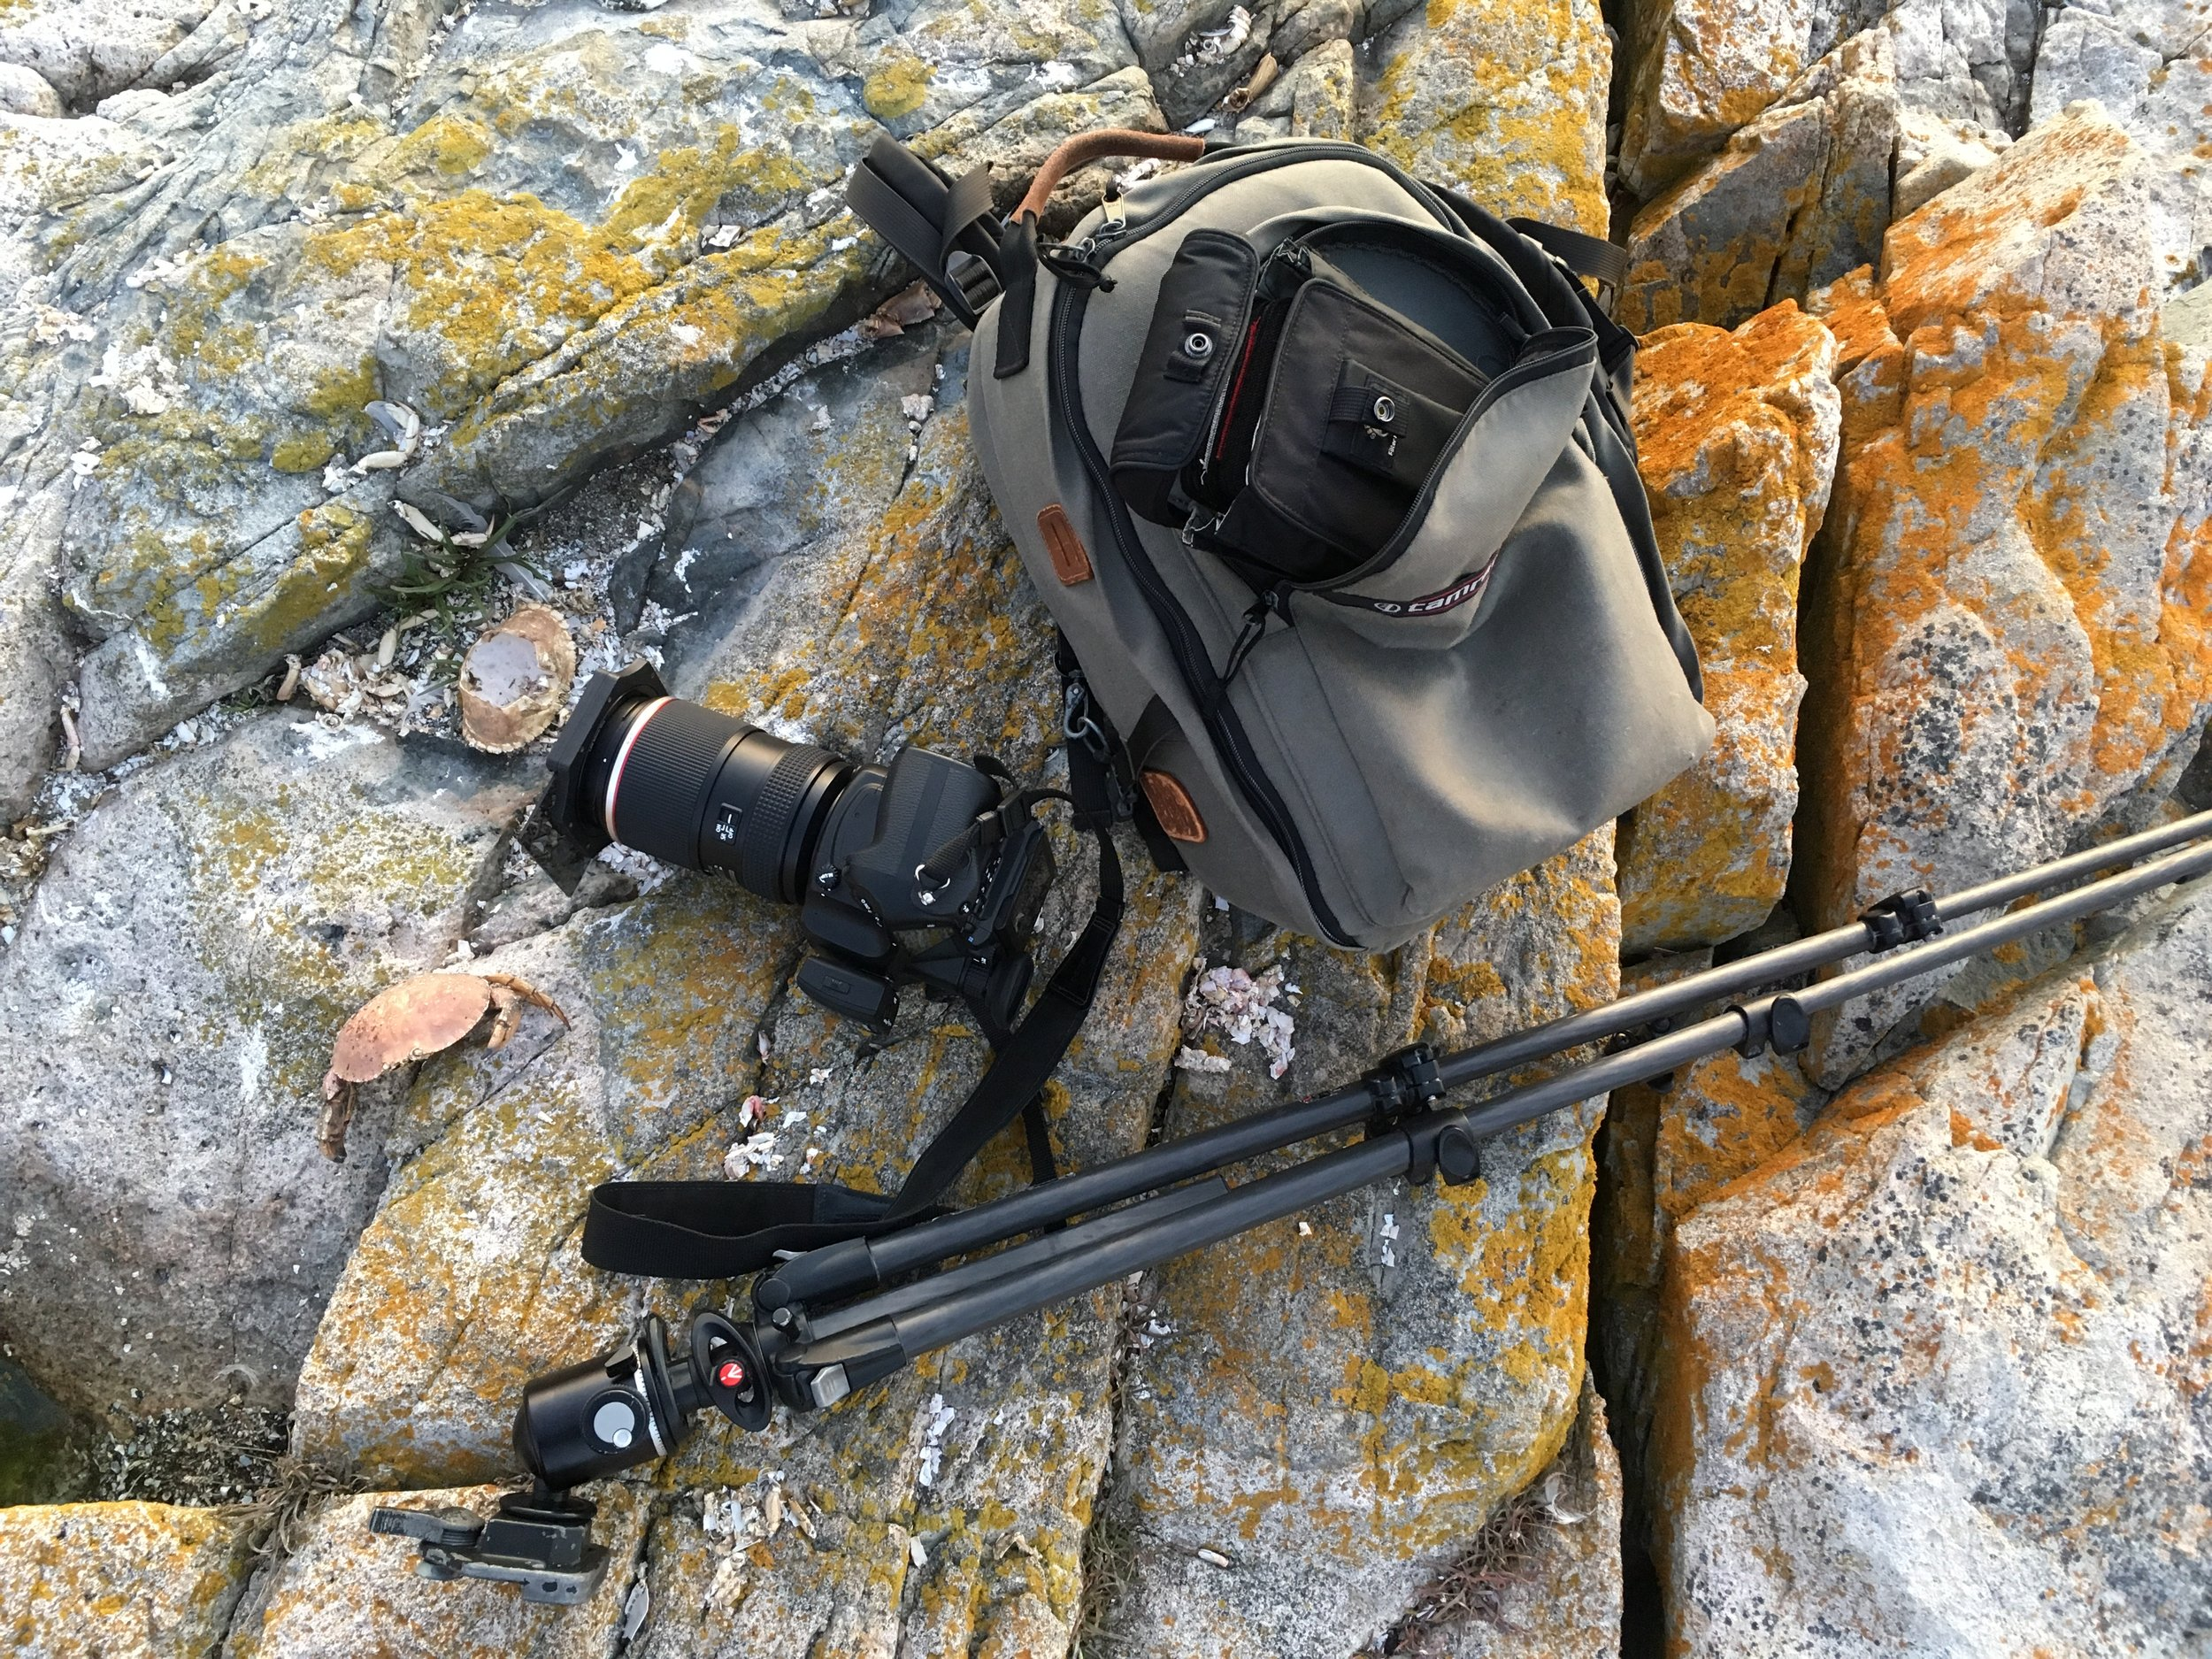 My bag and gear, shooting at the Raven's Nest on Schoodic Point in Acadia in October 2017. The carbon fiber tripod is fitted with an Arca Swiss ball head and the smaller black bag is my filter pouch. The camera backpack has been on every trip with me since 1994. Crab carcasses left in situ :)